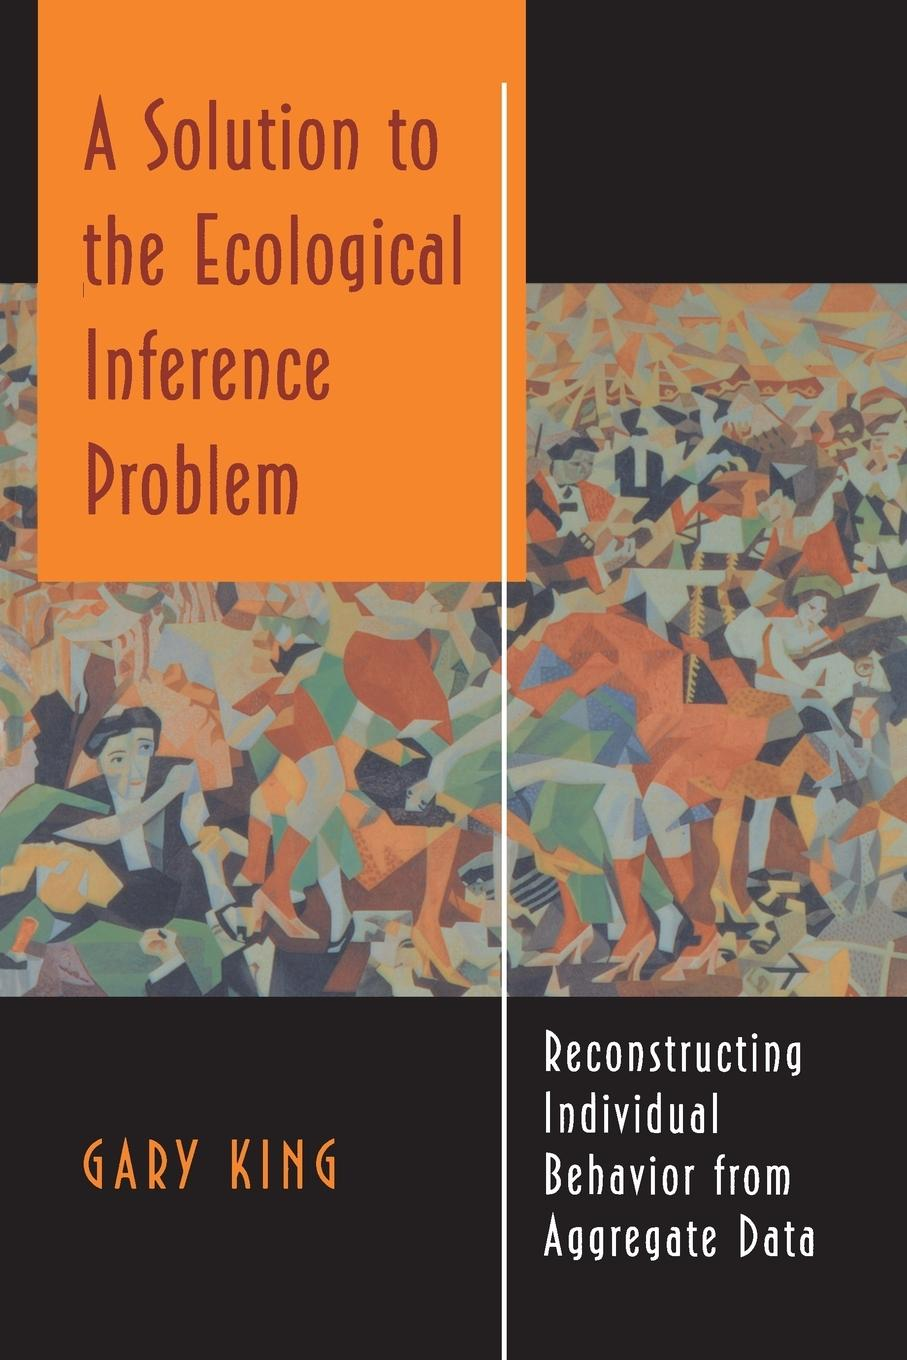 A Solution to the Ecological Inference Problem - King, Gary